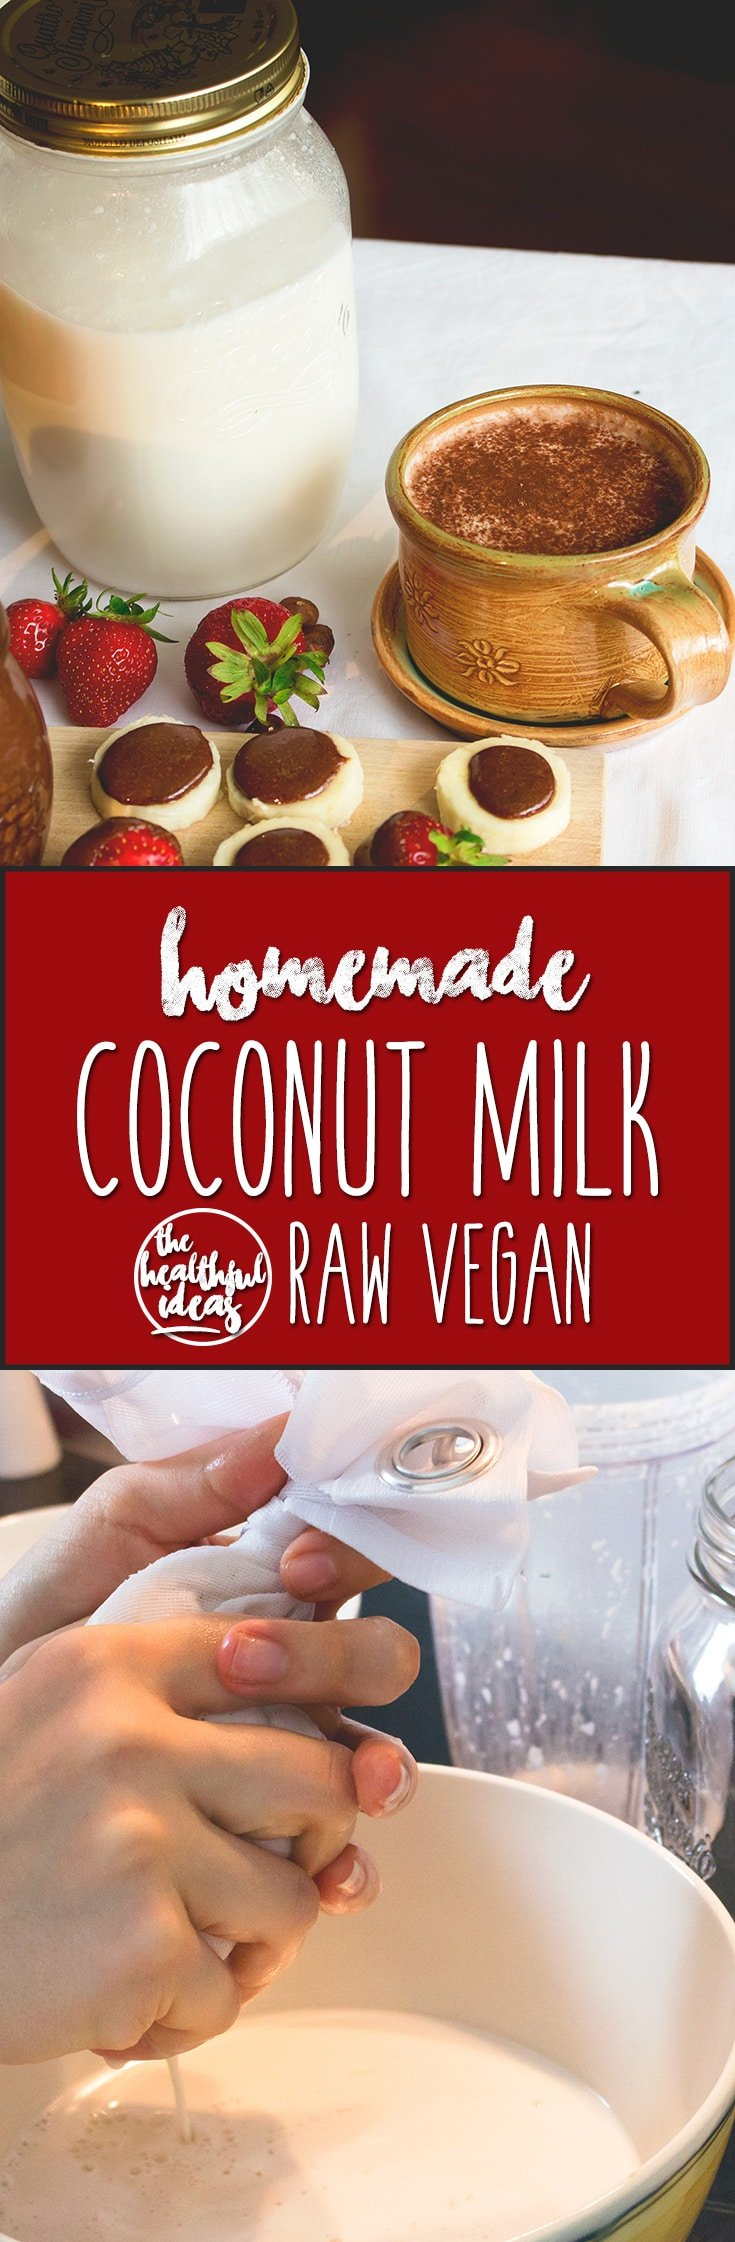 Coconut Milk - easy way to make homemade raw vegan coconut milk. Only 2 ingredients! I love this recipe, coconut milk is my favorite plant milk. | thehealthfulideas.com